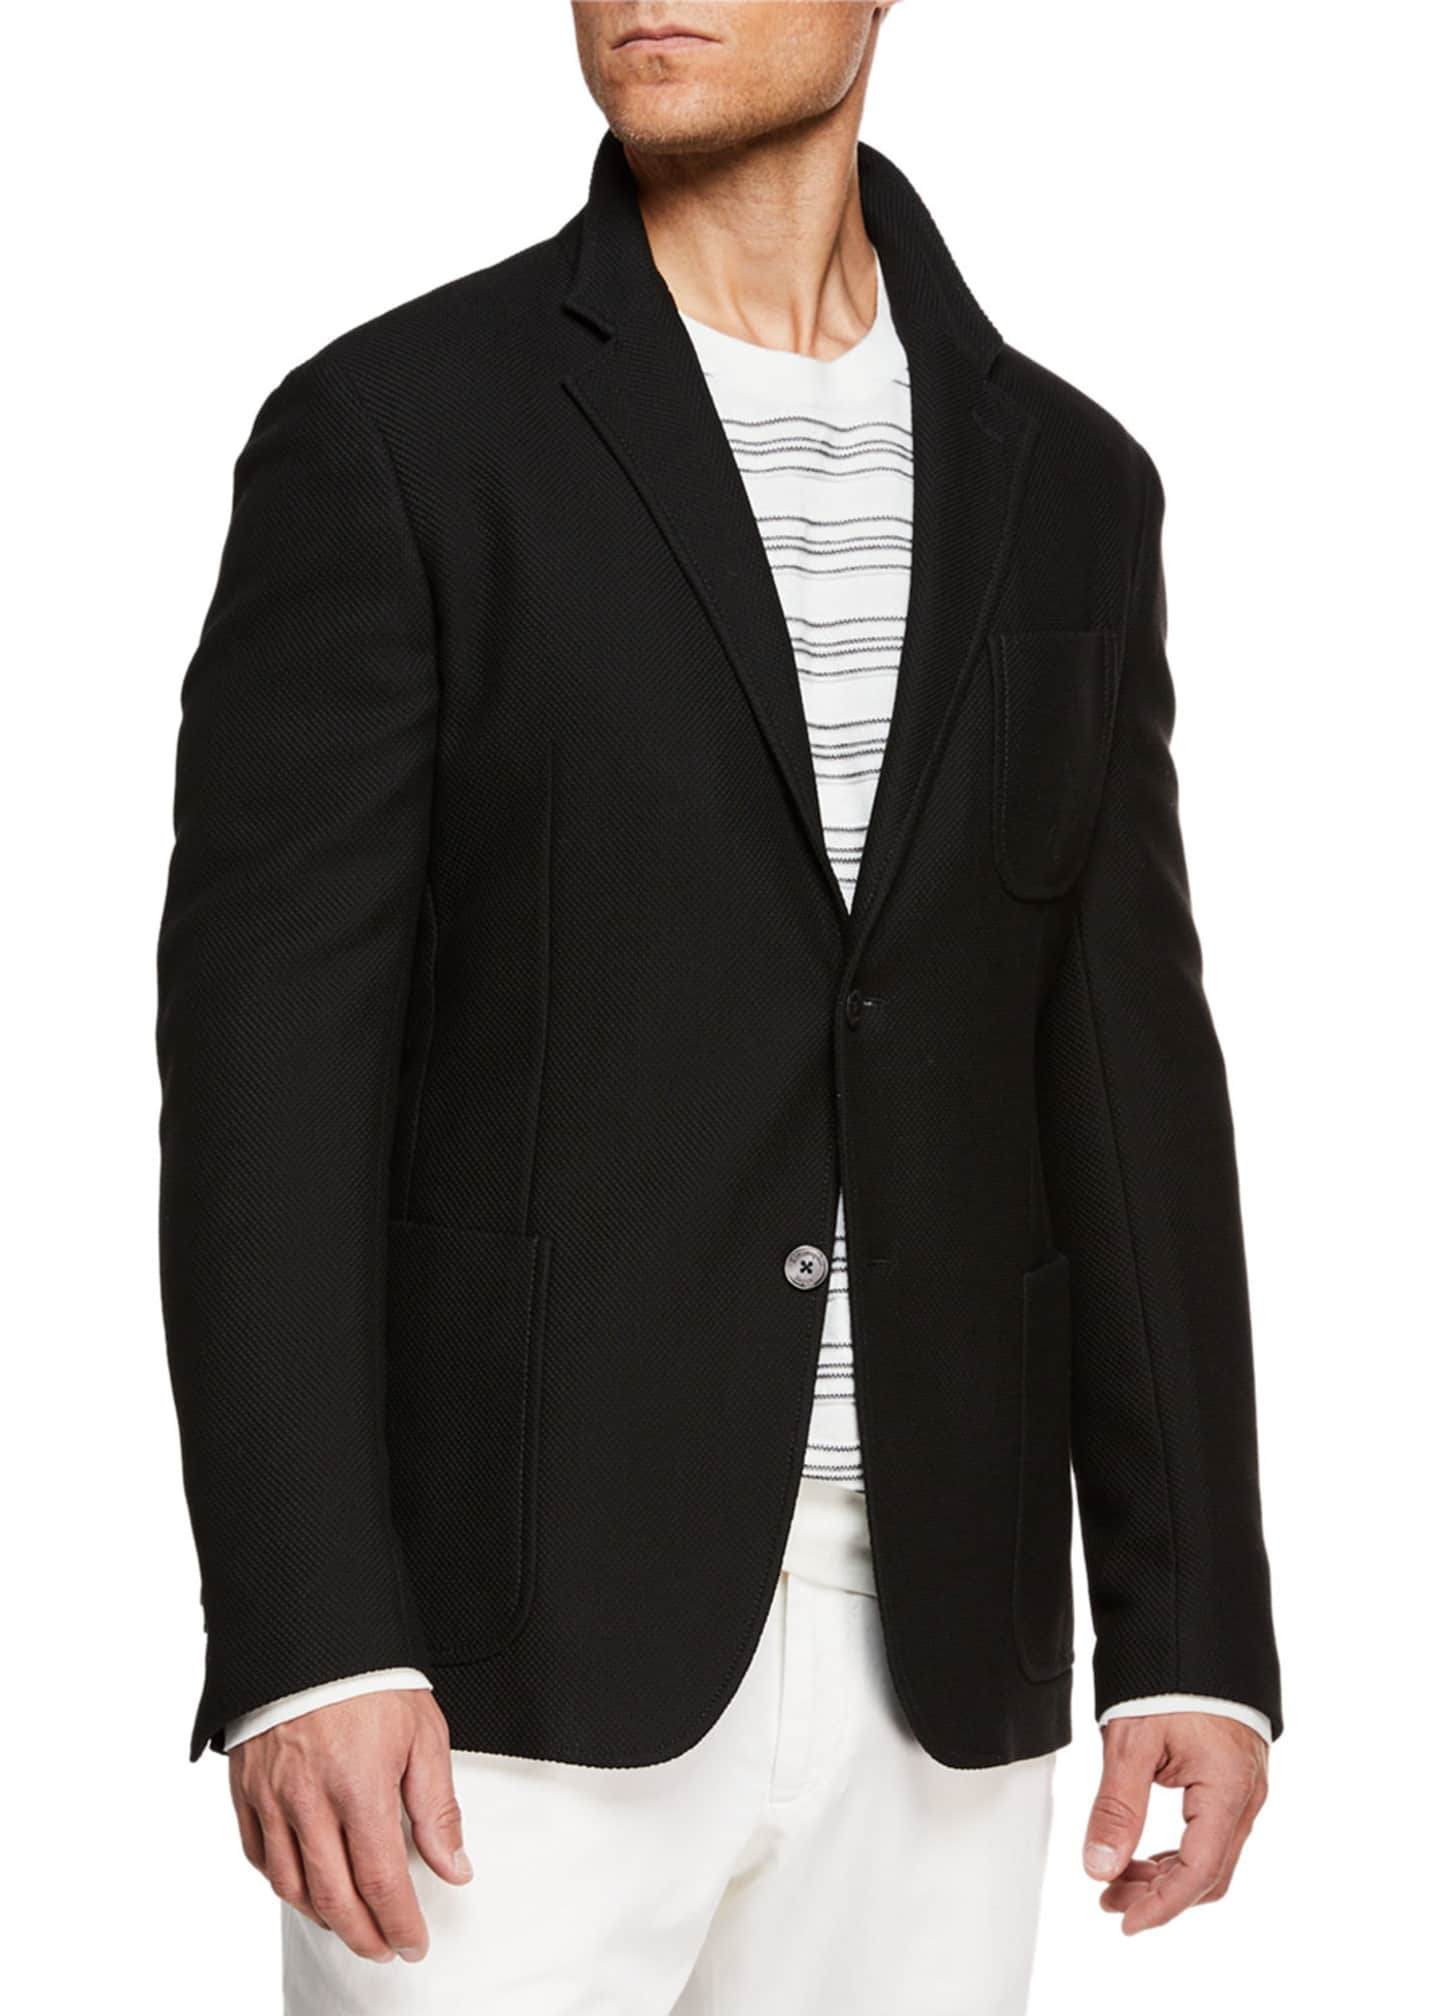 Ermenegildo Zegna Men's Open-Weave Two-Button Blazer